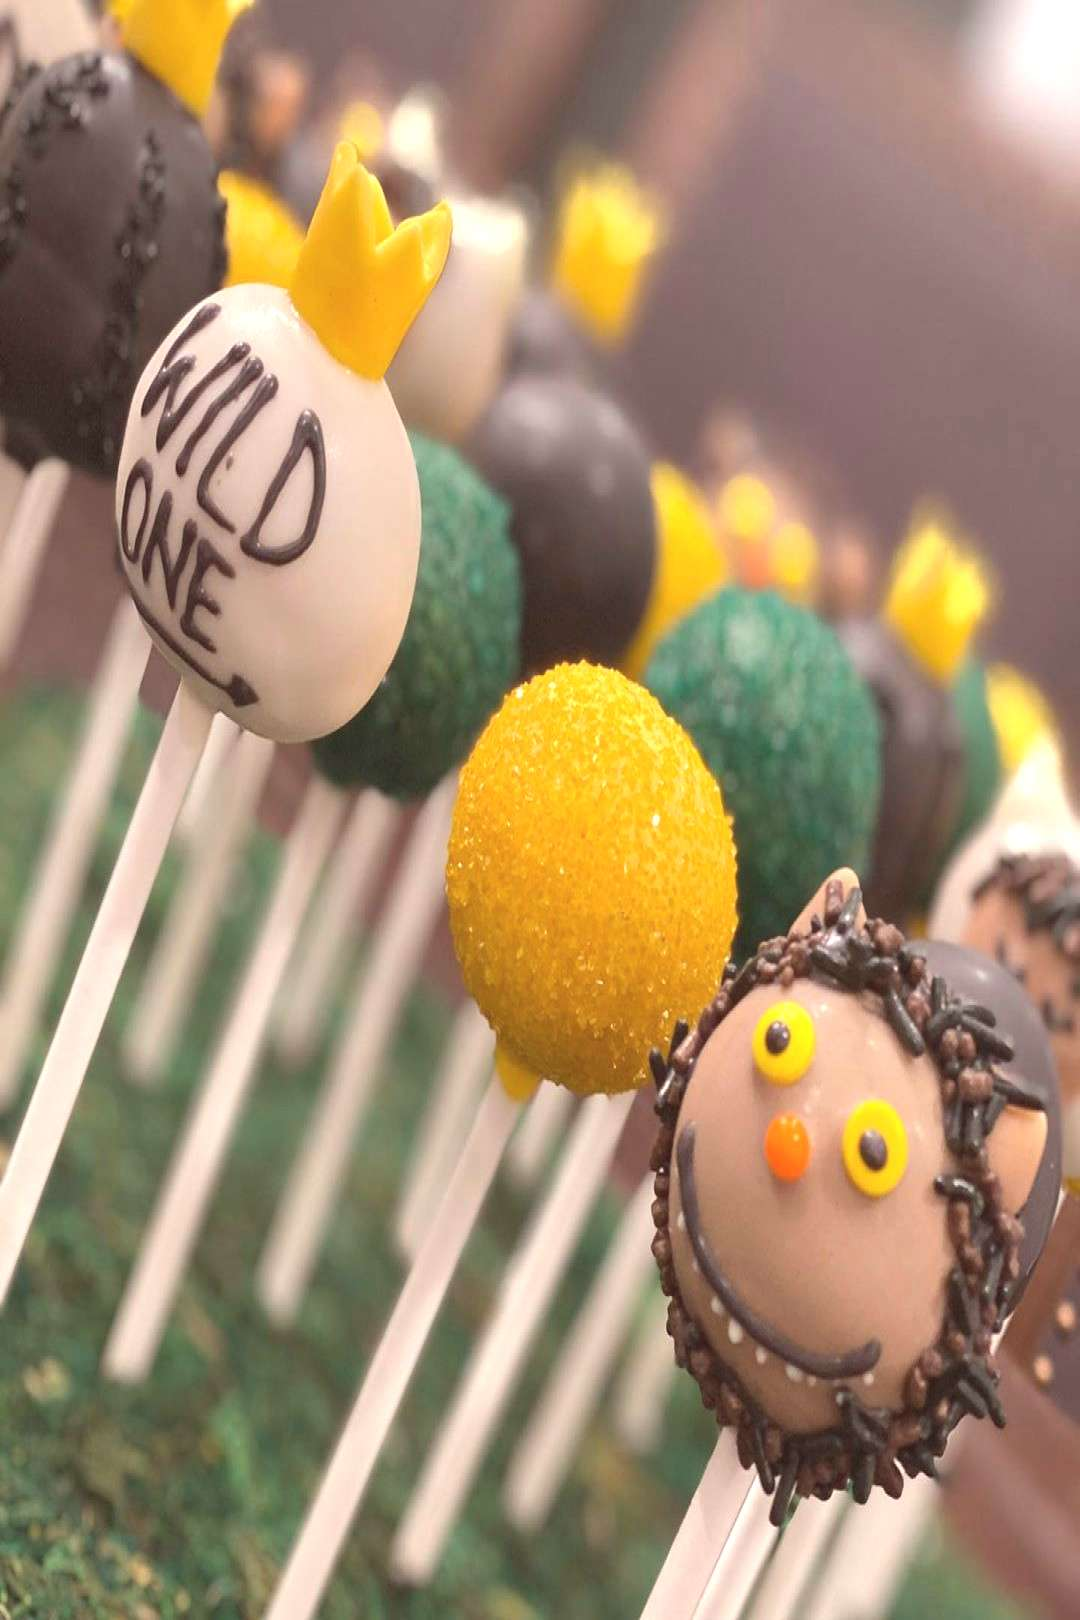 Where the wild things are cake pops turned out so cute!! #cakepop